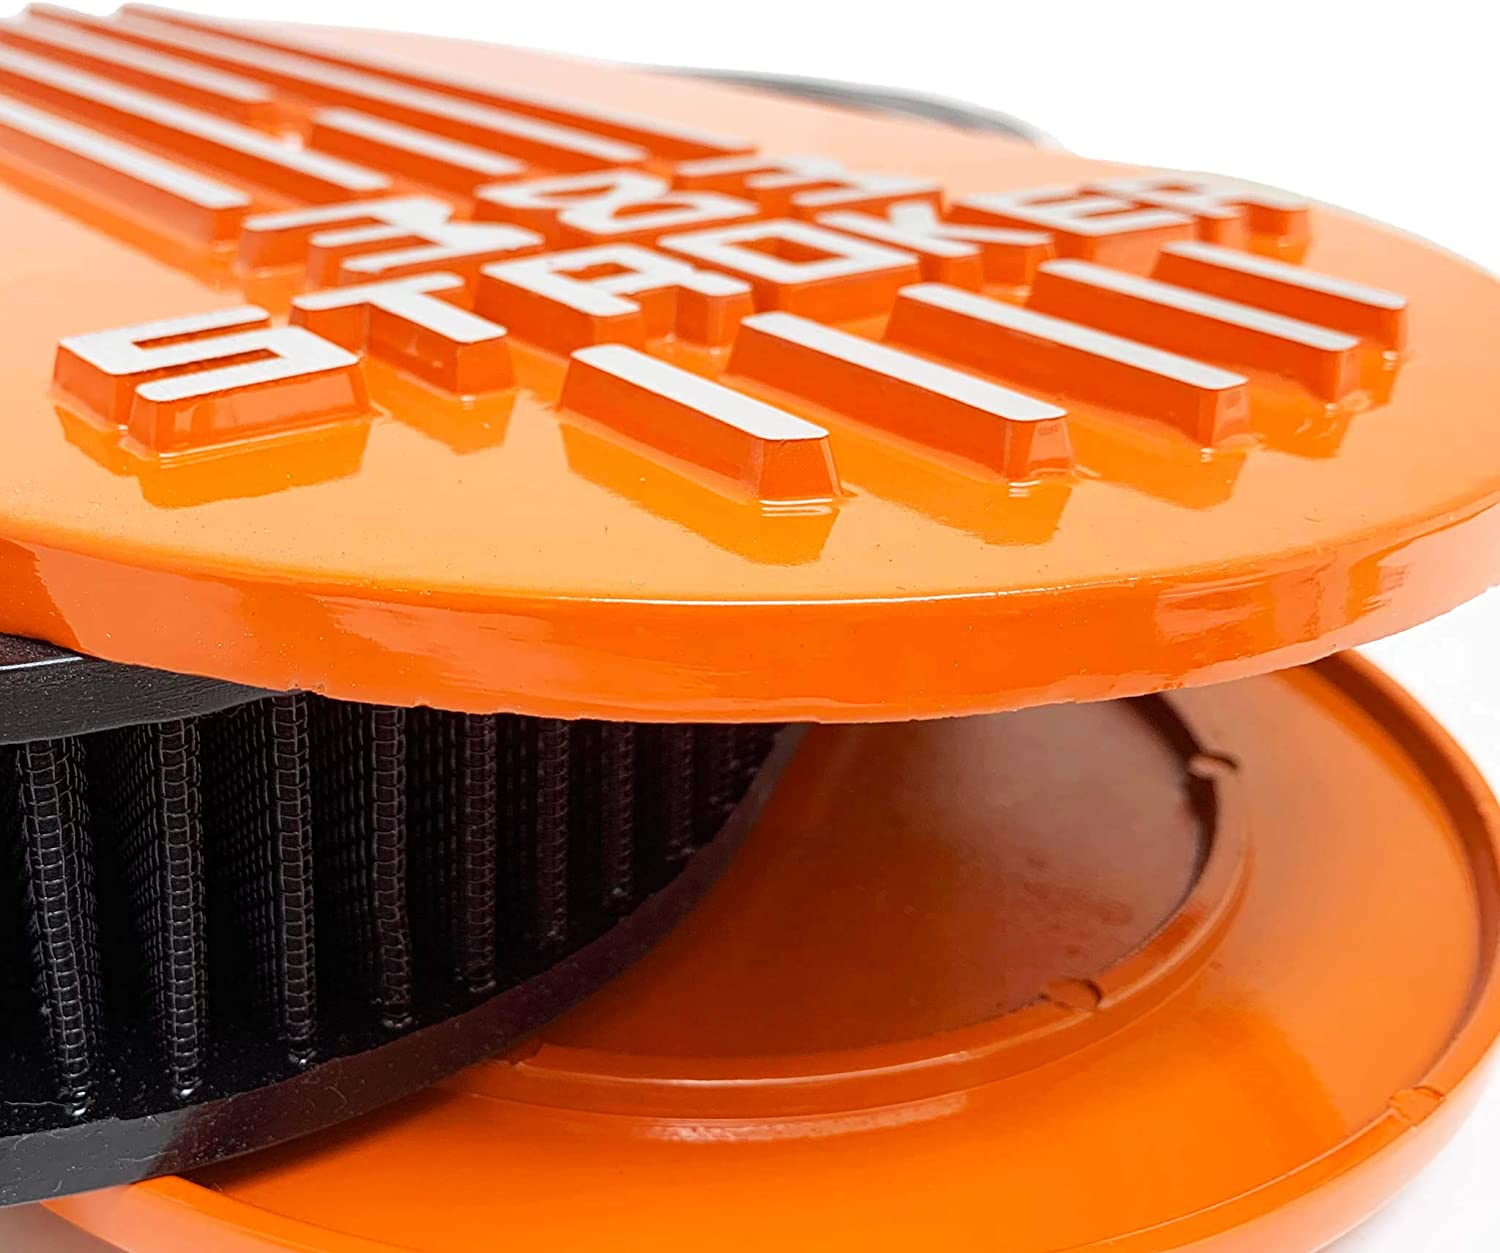 Orange 383 STROKER Small Block Chevy Air Cleaner Lid Kit SBC Tall